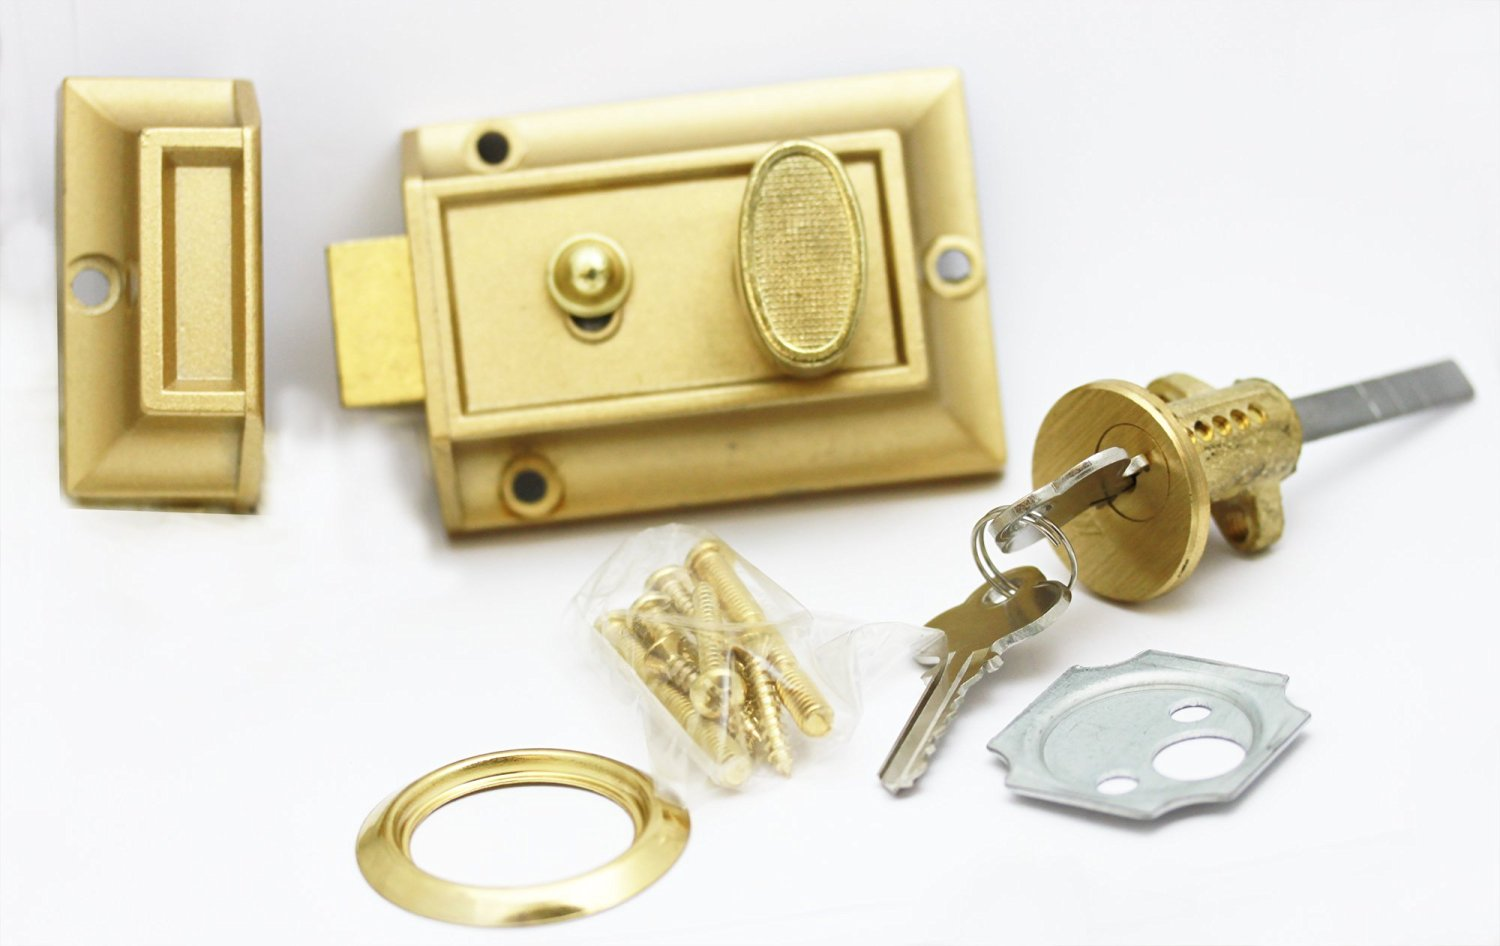 Defender Security U 9968 Night Latch and Locking Cylinder Home Improvement Polished Brass Contemporary Prime-Line Products